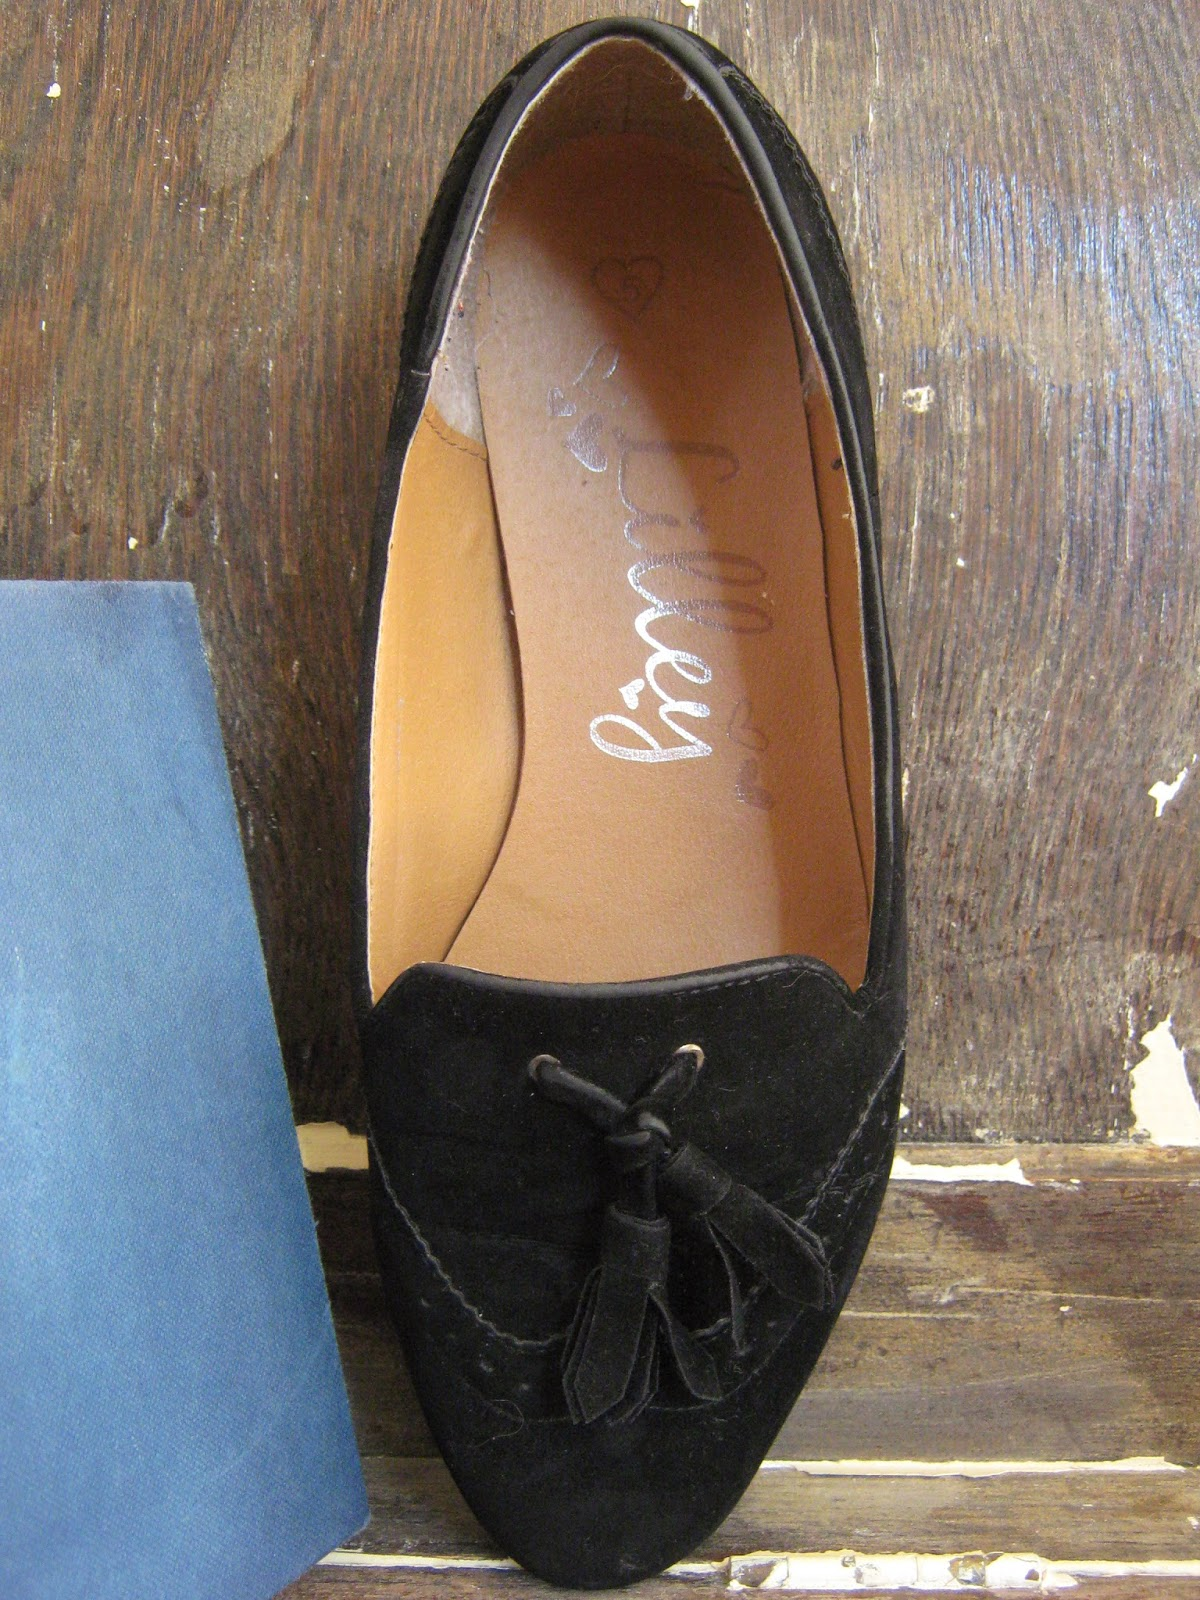 Thrifty Black Loafer Slippers